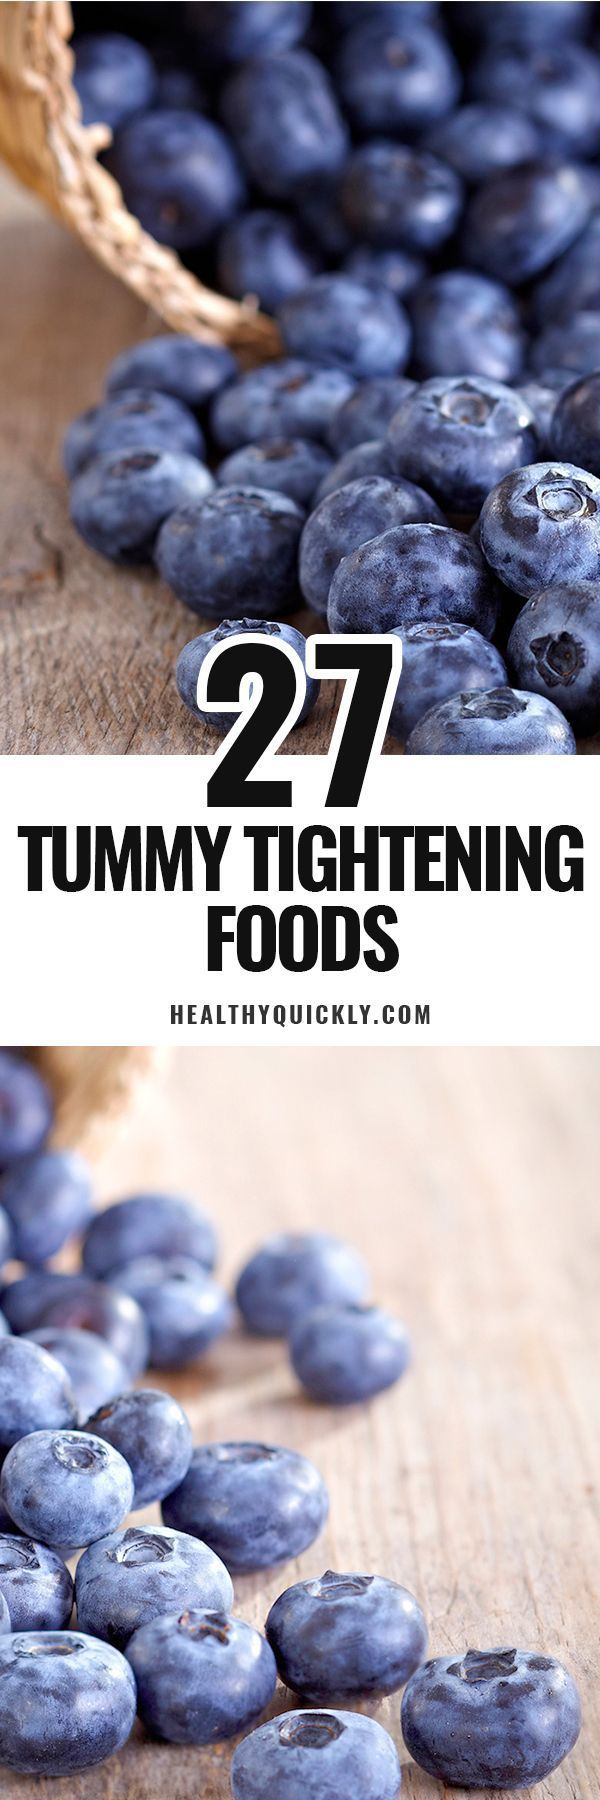 If you want o discover the best tummy tightening foods, then this article is for you. It's perfect for women, for teens and even for obese. This is a list of food that works even for over 40 to lose belly fat. Also great for beginners, college students and for moms for easy and rapid weight loss. Heve them before bed as dinner to lose 10 pounds fast and in a healthy way. Consider these foods as quick tips and tricks for lazy and extreme fat burning + detoxing weightloss.